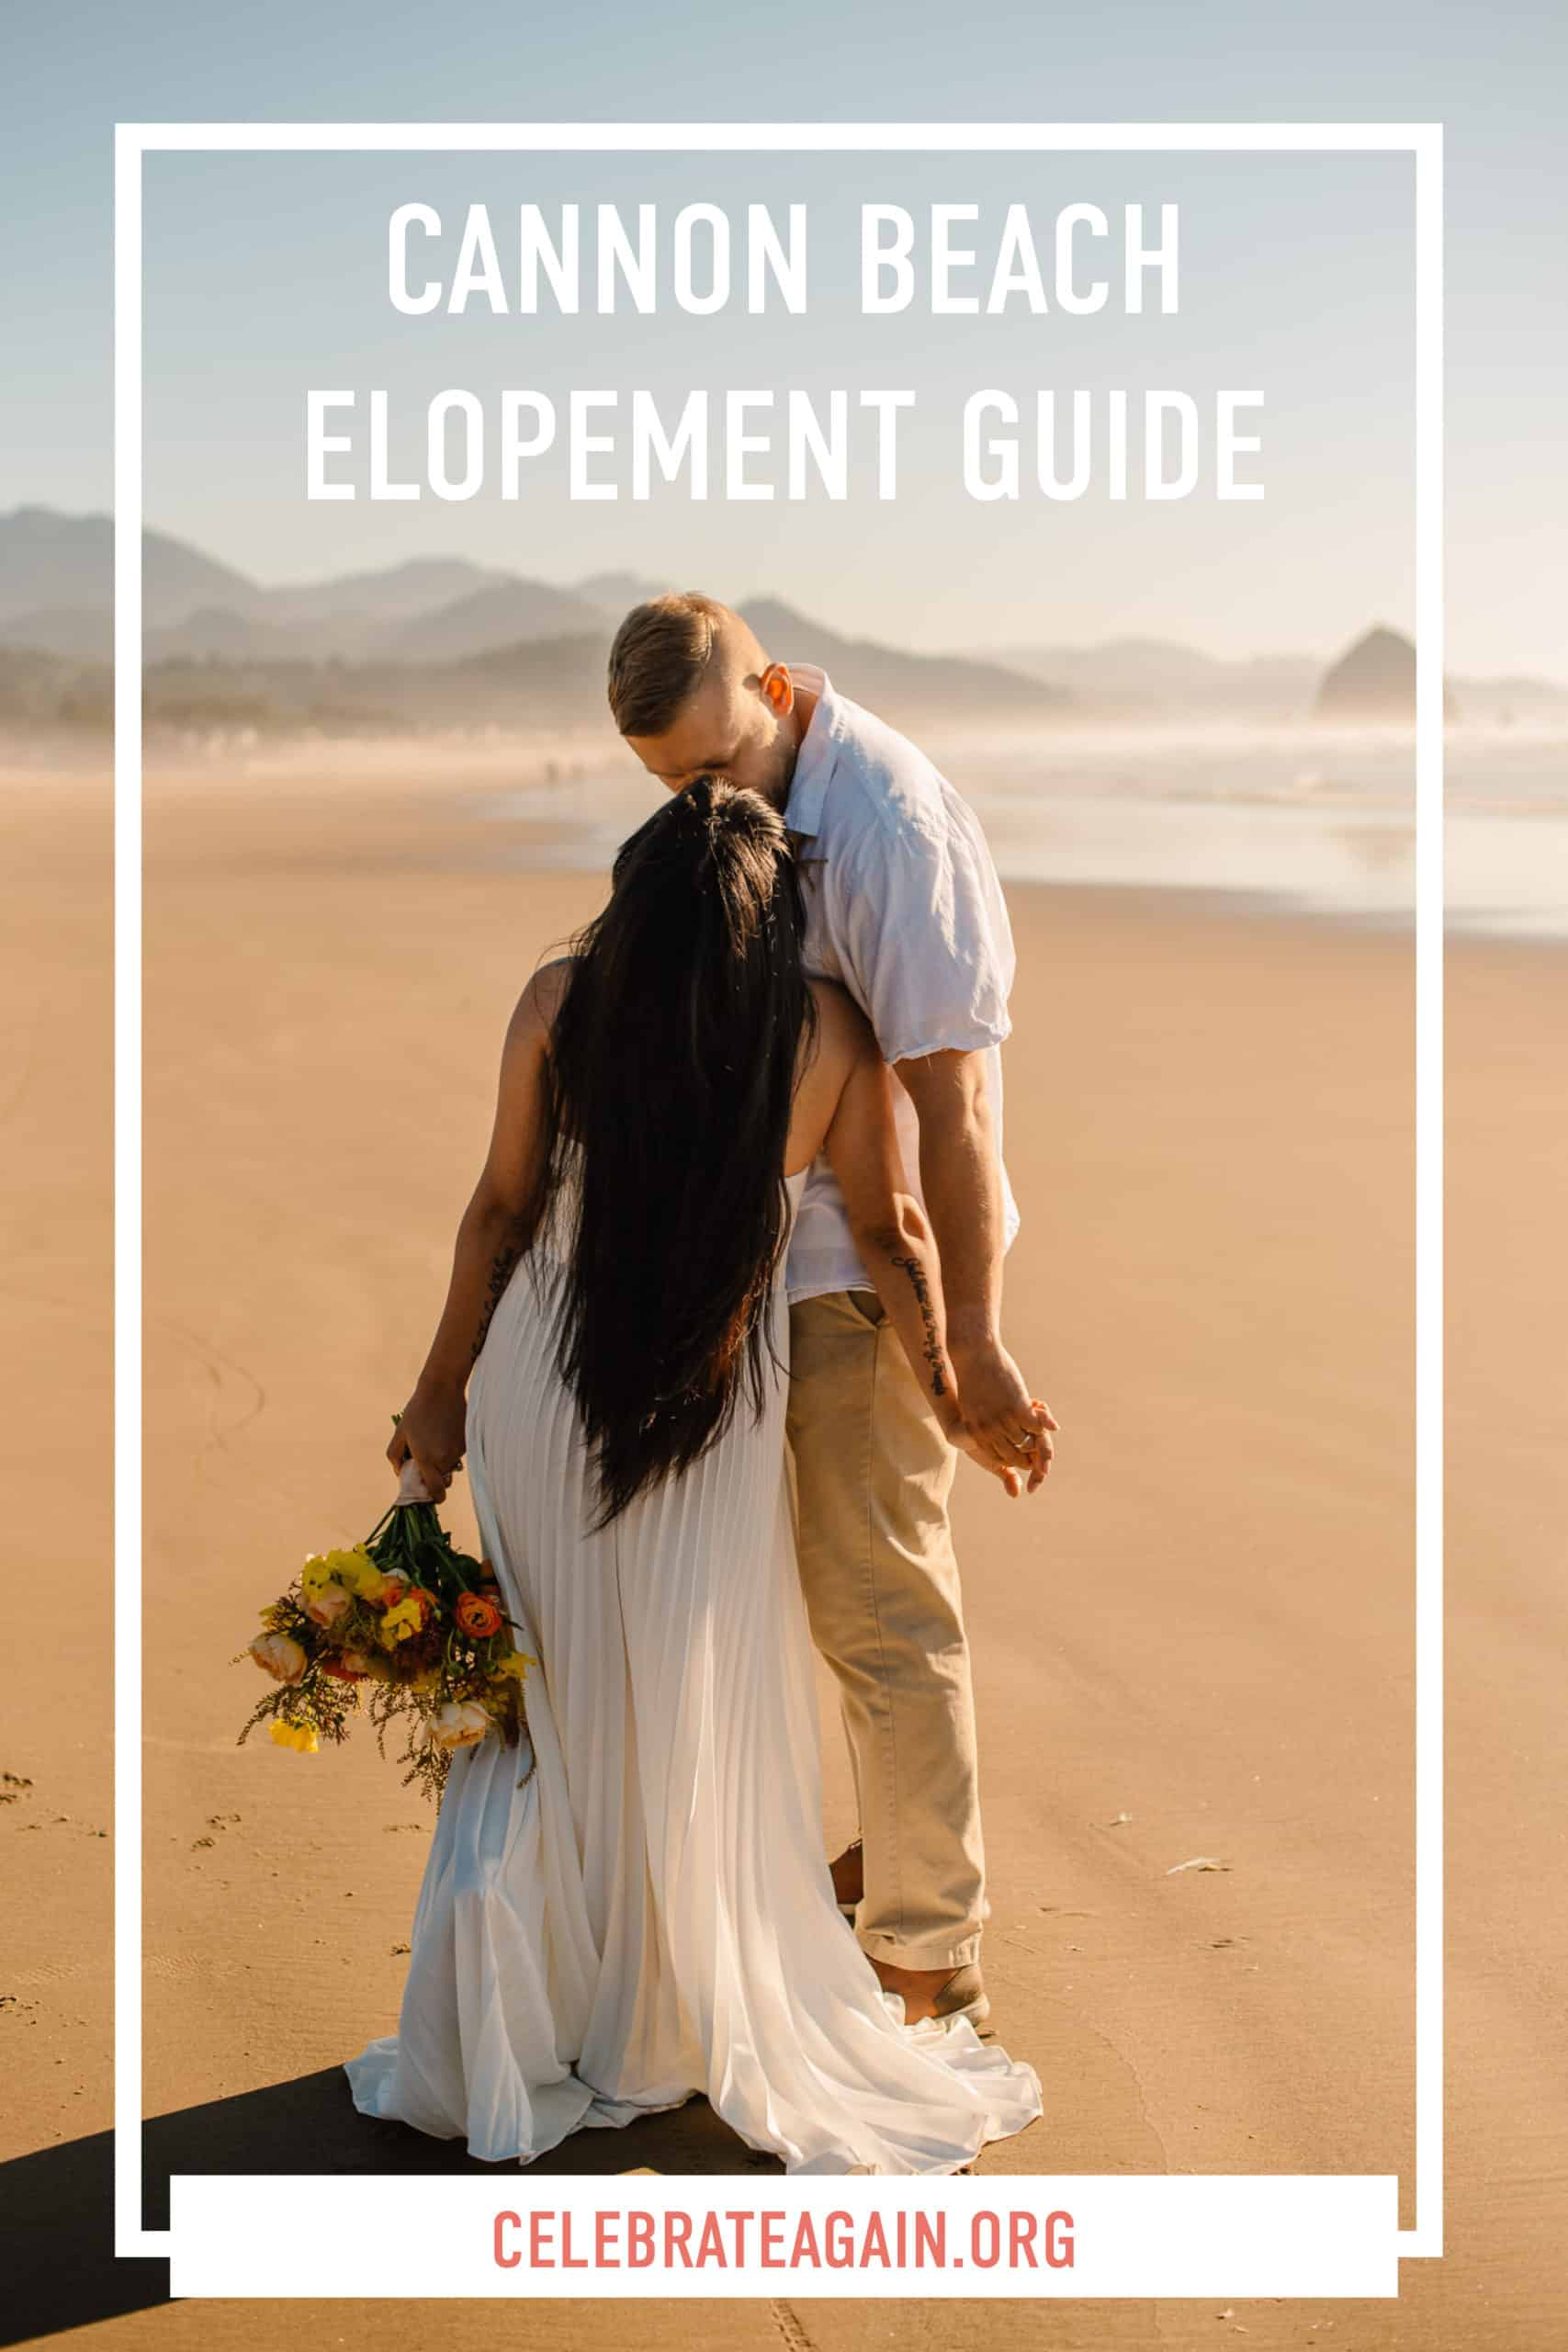 cannon beach elopement guide view of a couple kissing on cannon beach oregon after eloping themselves